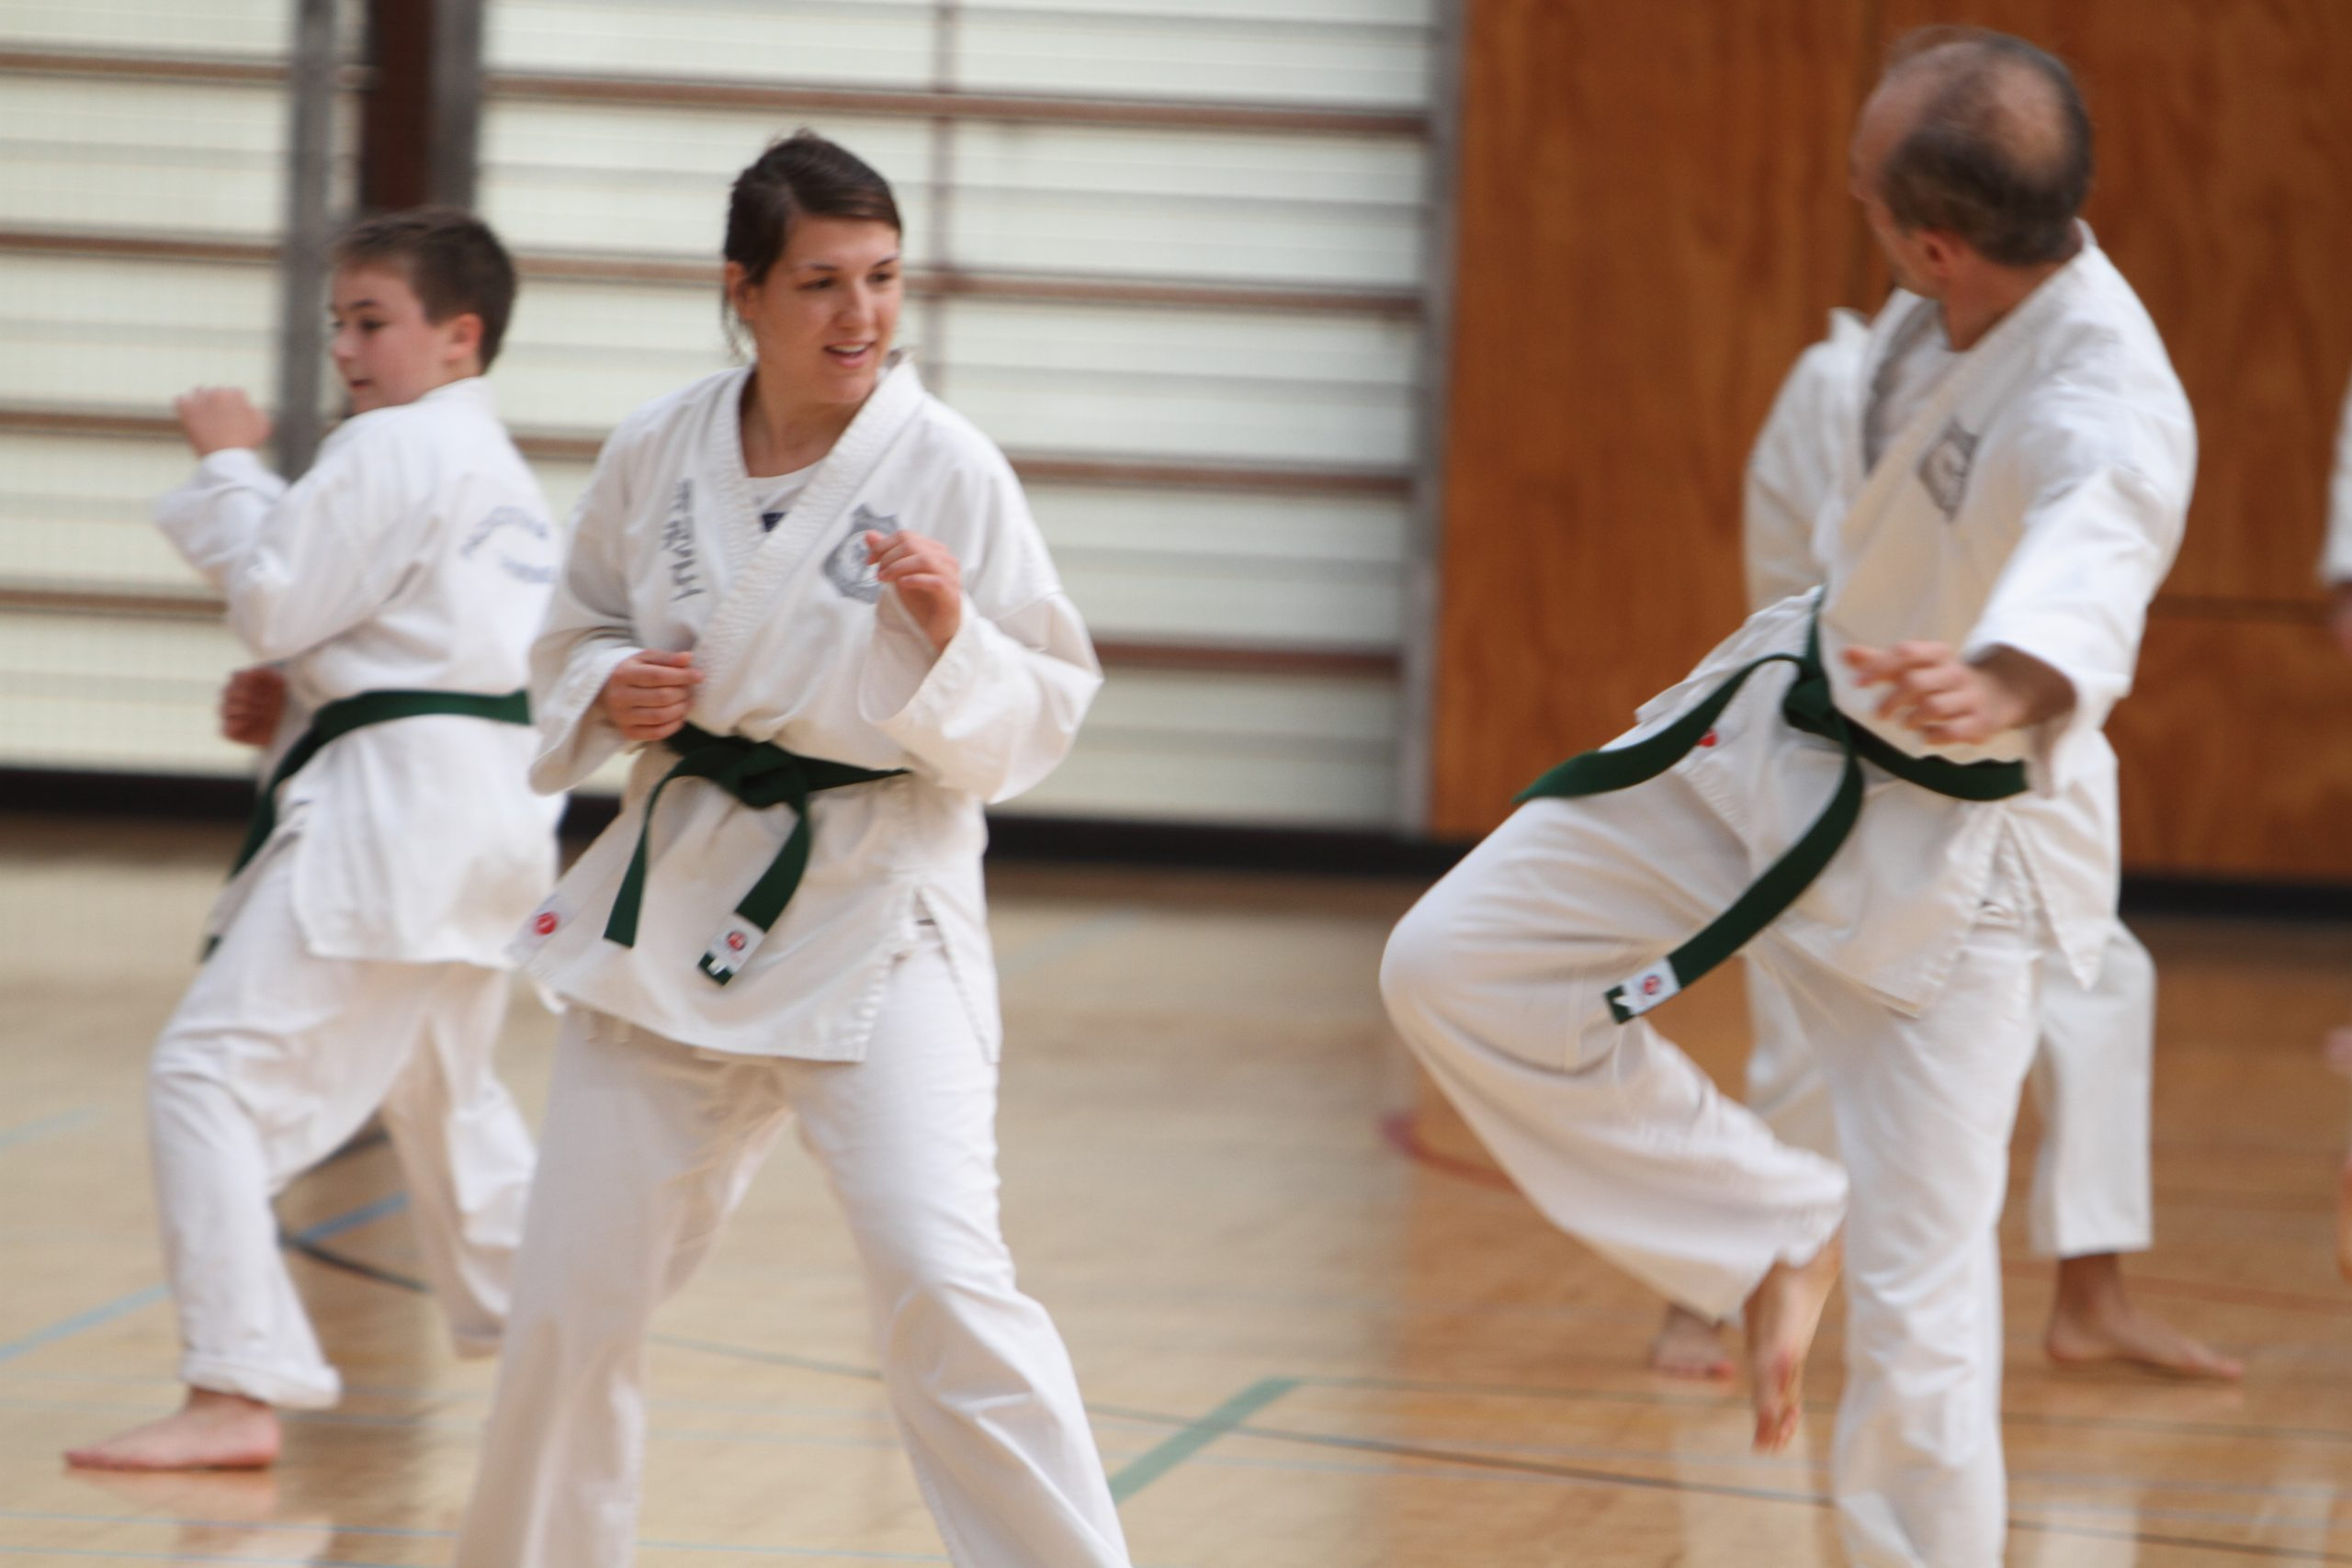 Beginner martial art classes for adults